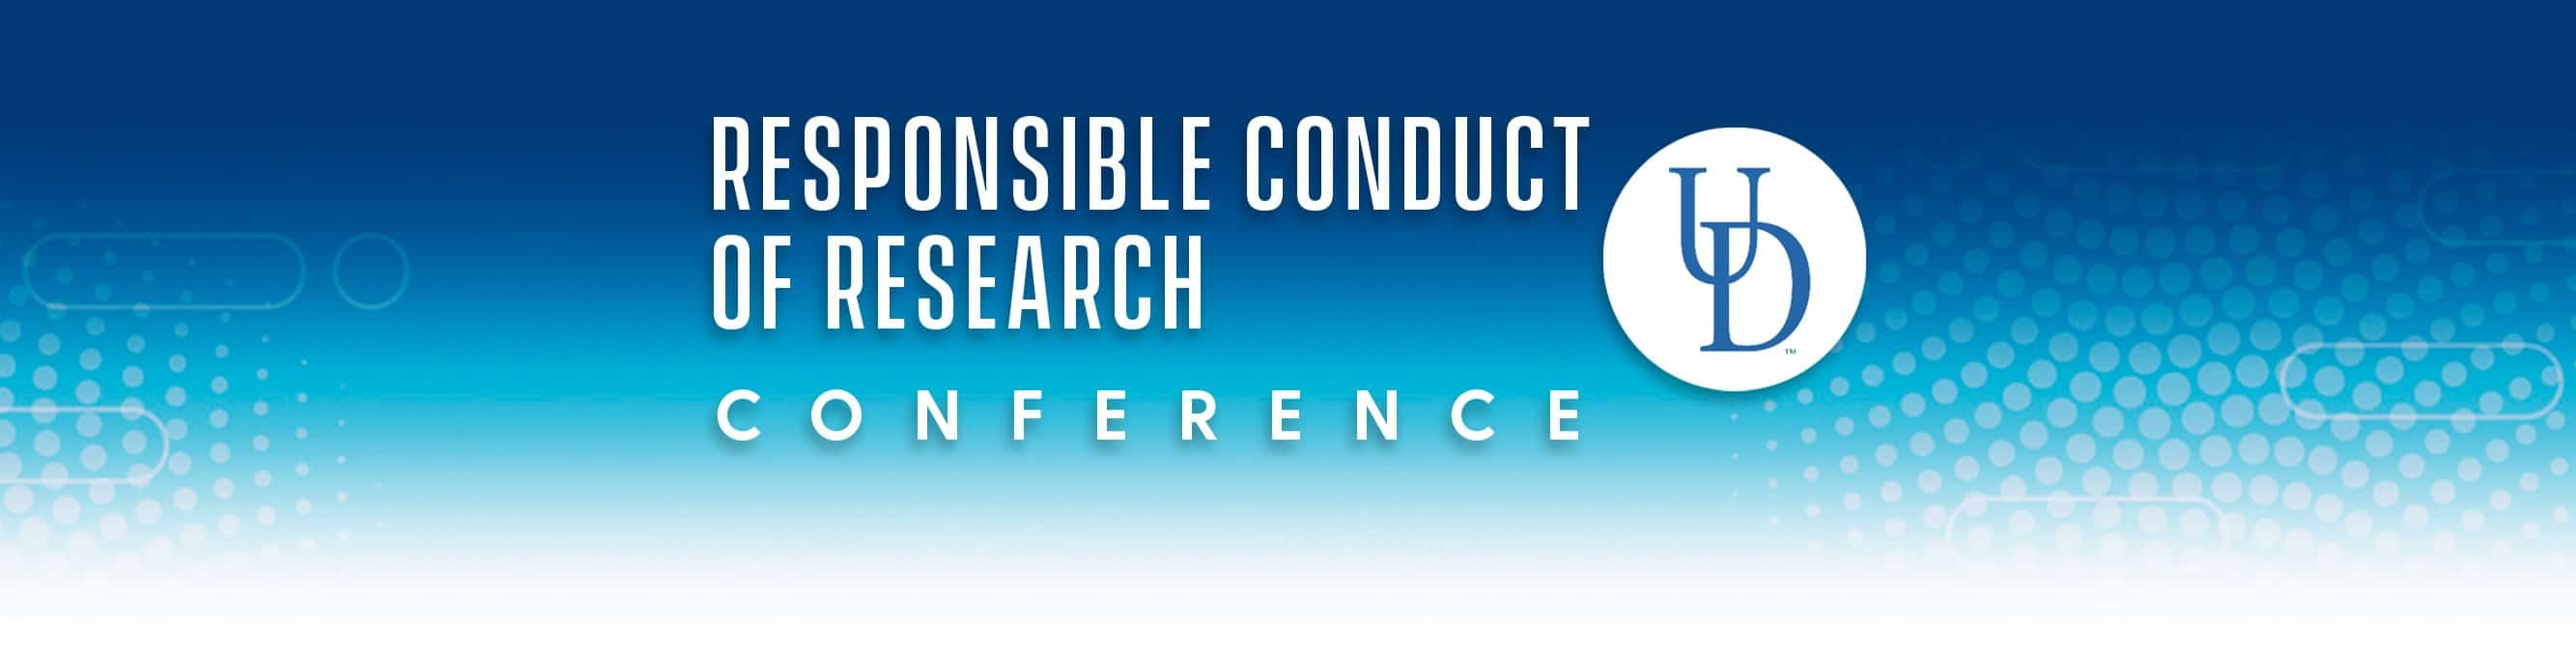 UD Research Office 2019 Responsible Conduct of Research Conference